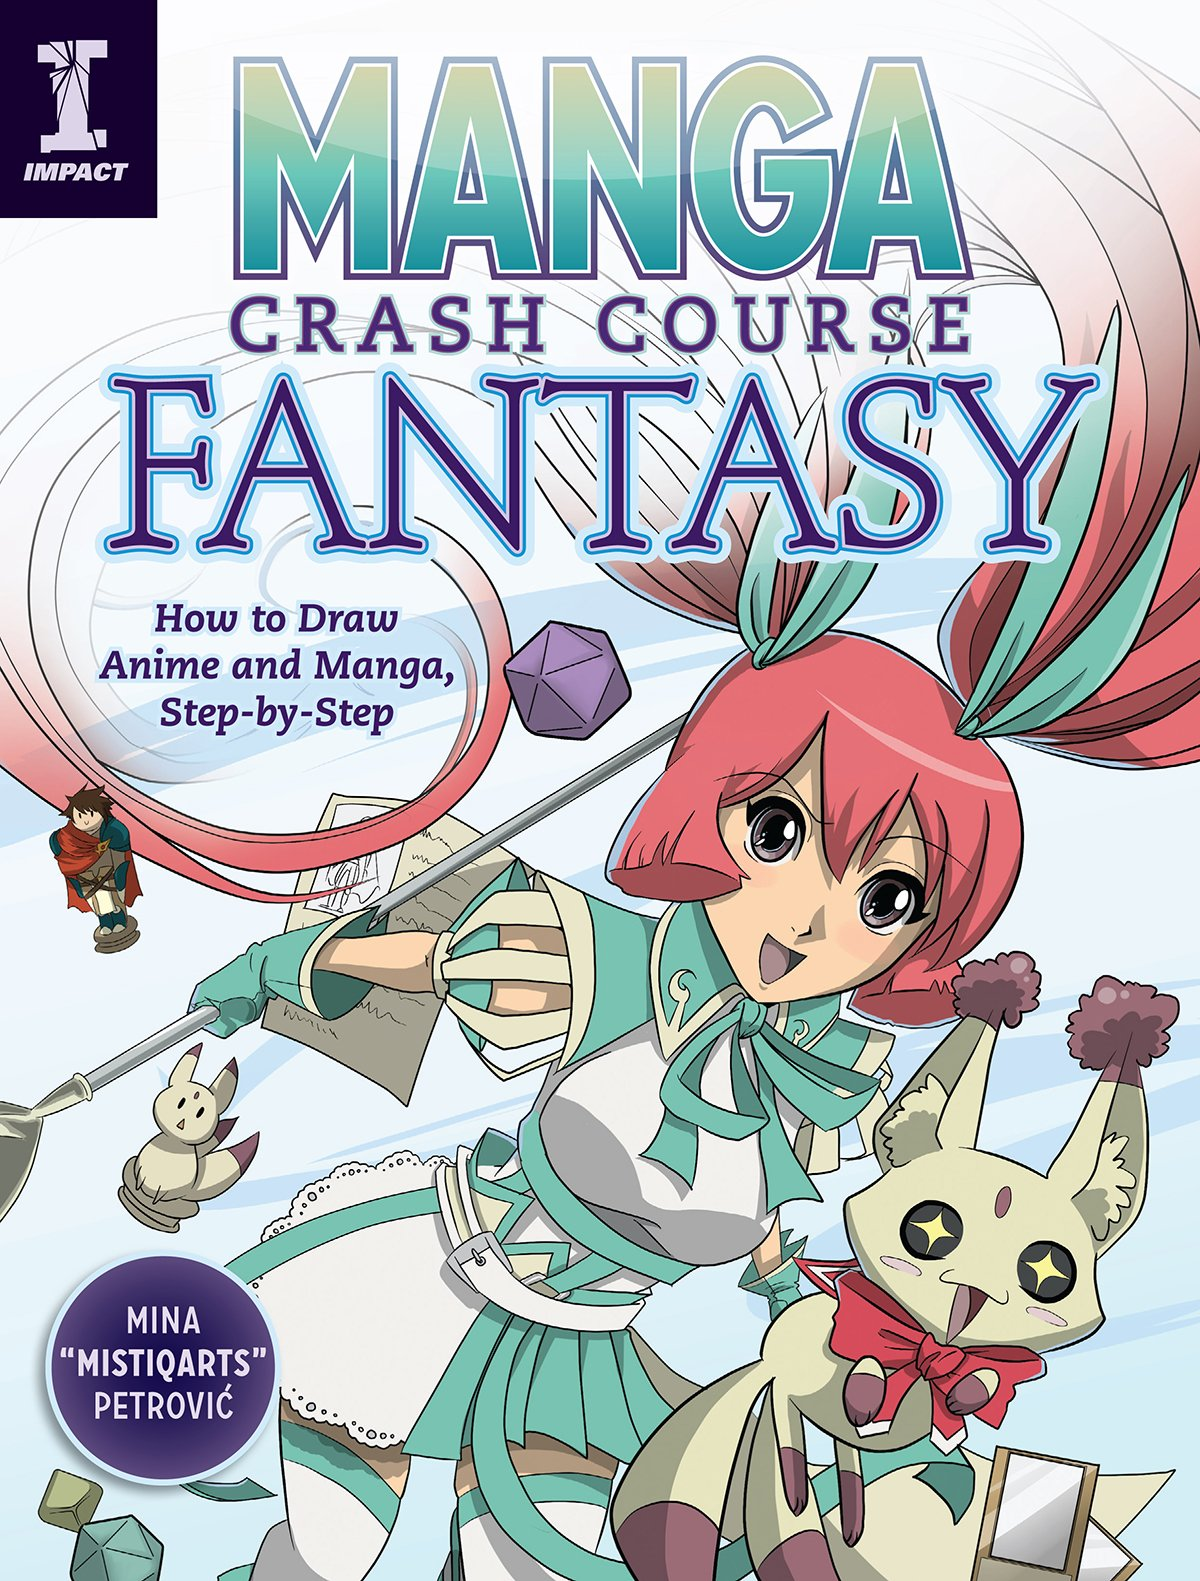 Read Online Manga Crash Course Fantasy: How to Draw Anime and Manga, Step by Step PDF Text fb2 book